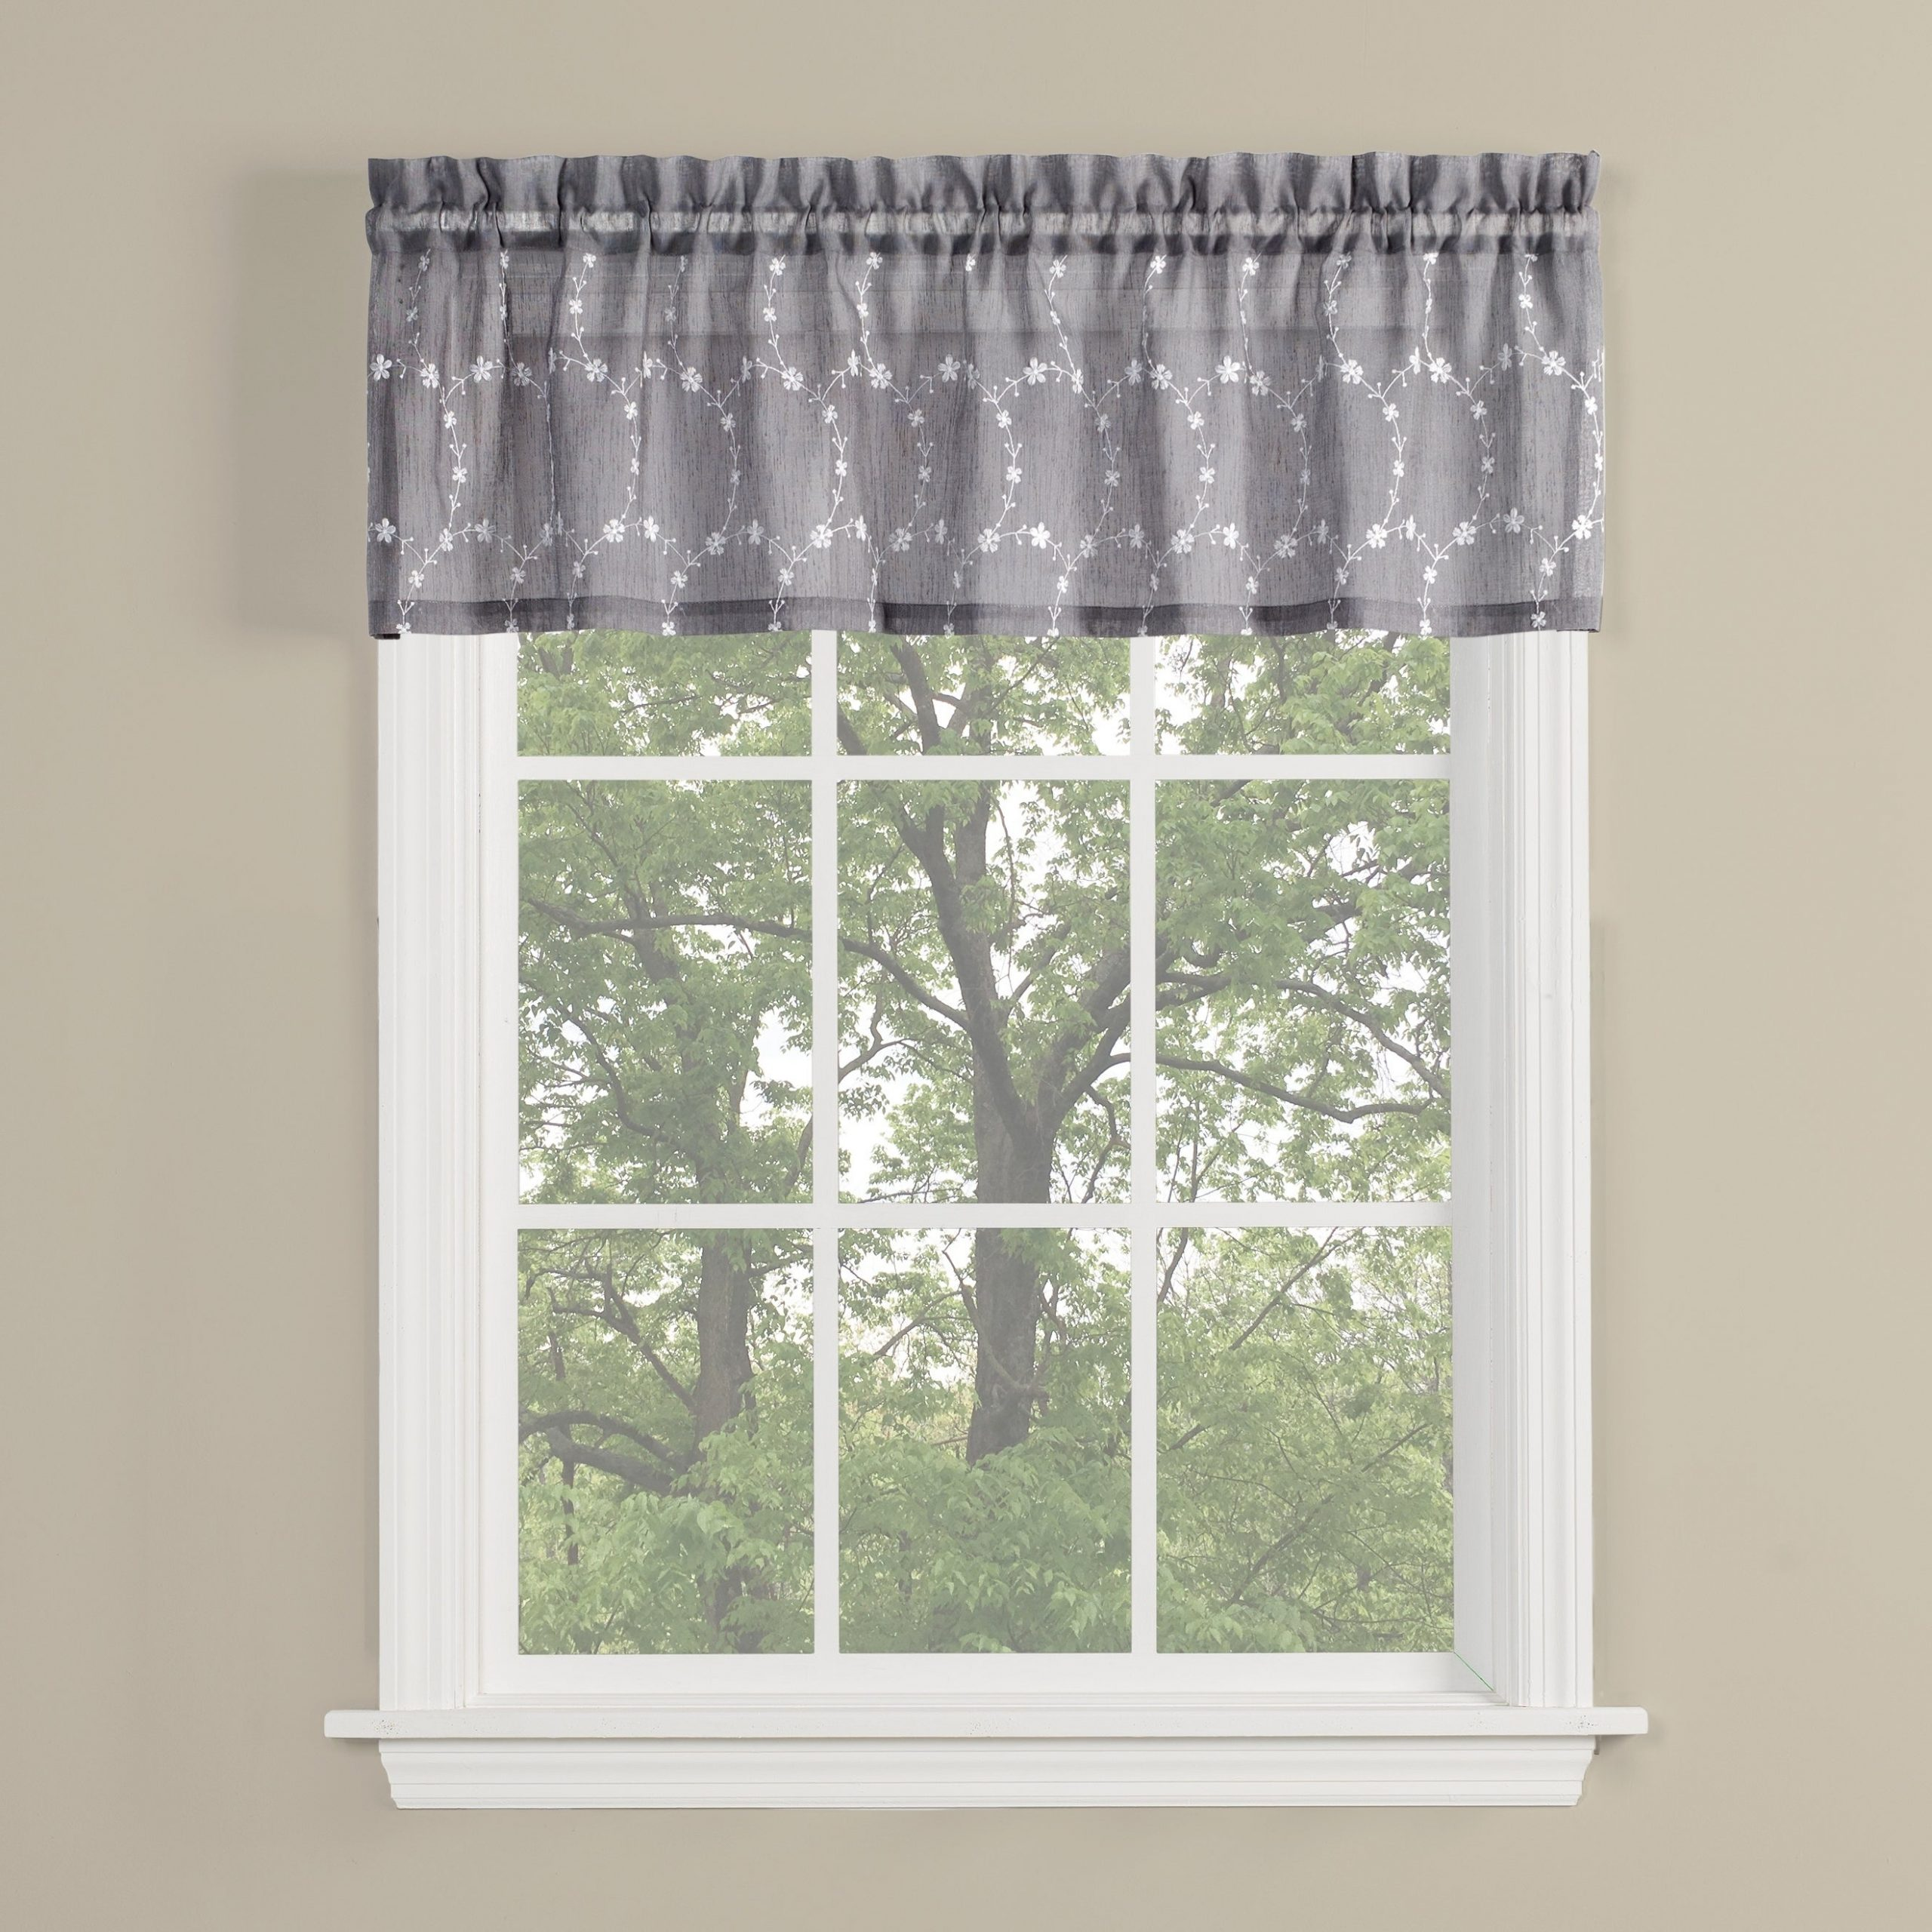 Flinders Forge 30 Inch Tiers In Dove Grey Throughout 2021 Skl Home Briarwood 13 Inch Valance In Dove Gray (Gallery 8 of 20)